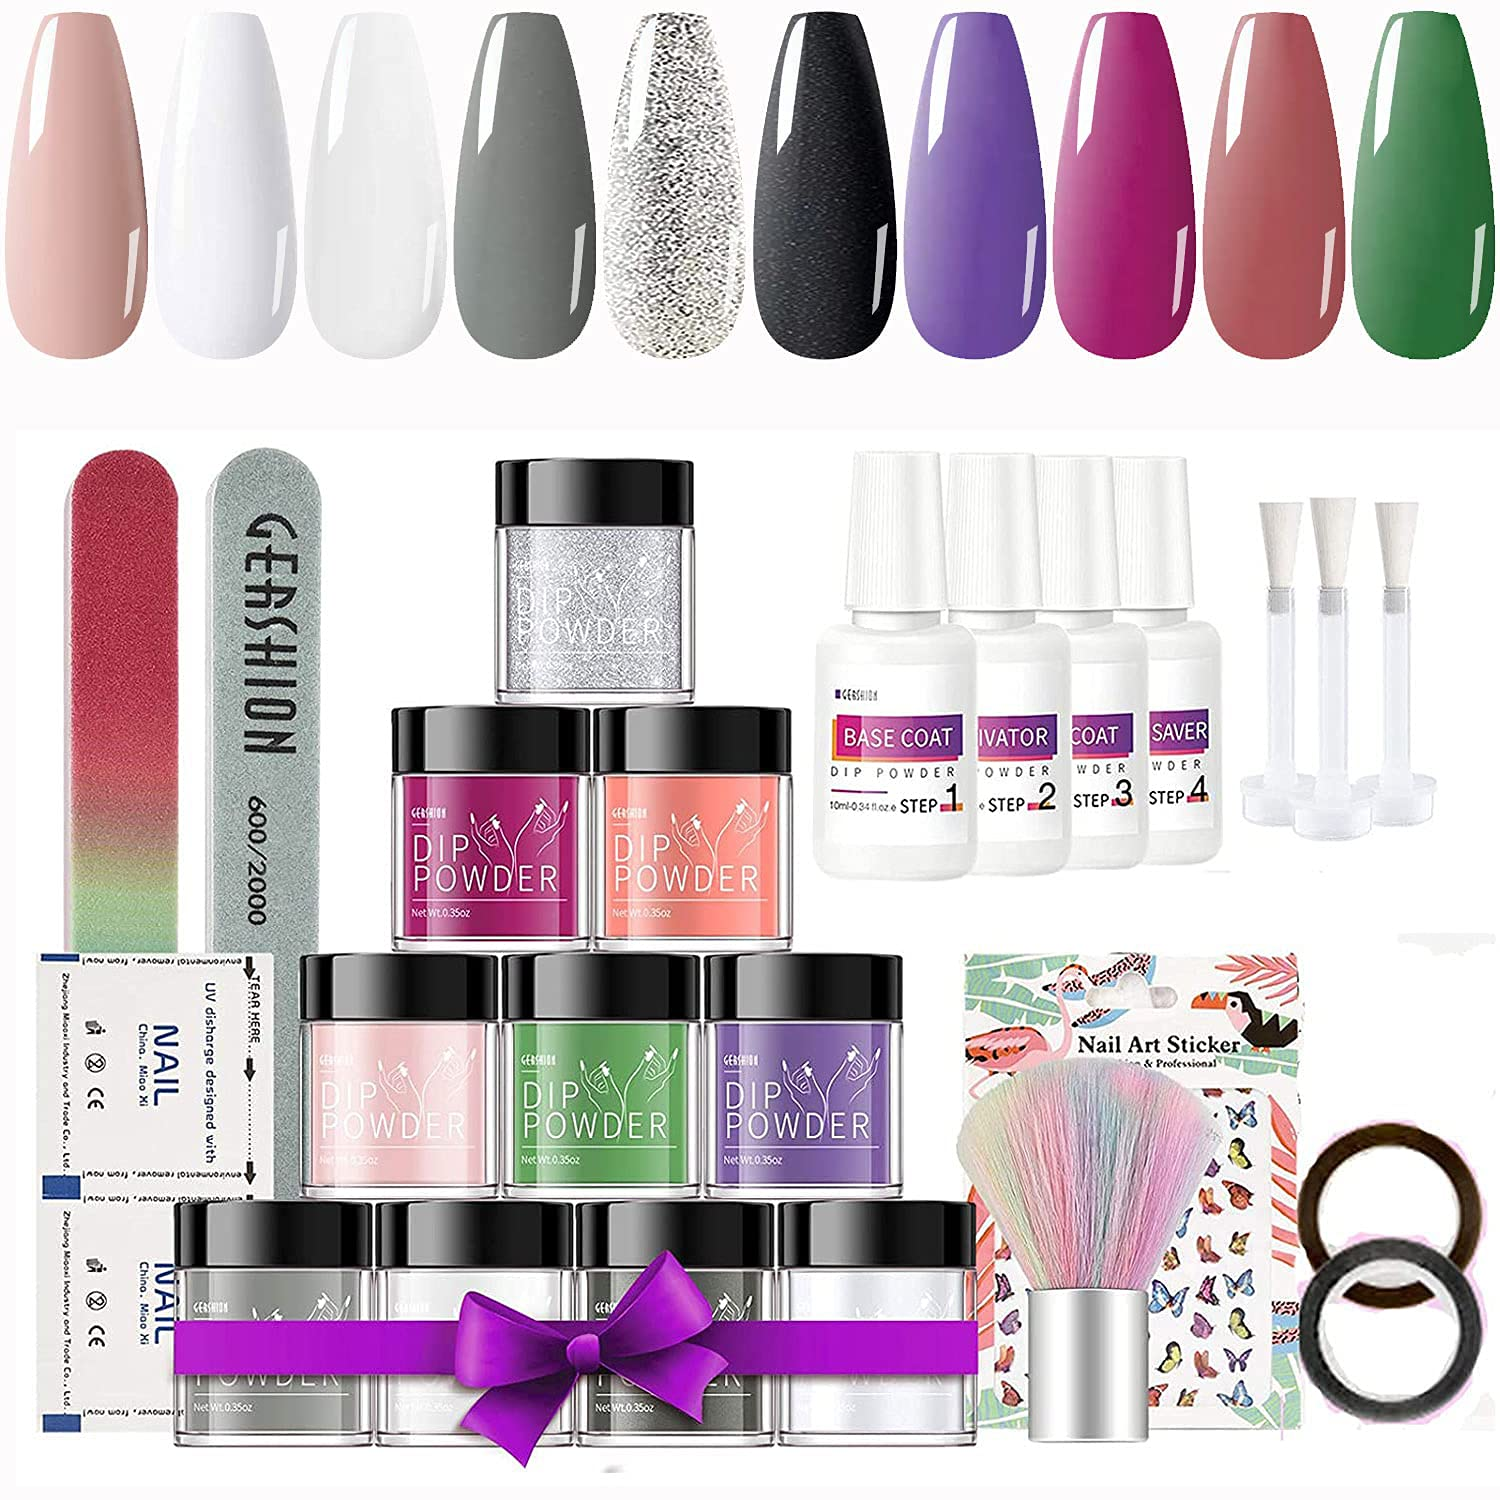 Gershion Dipping Sale price Powder Nail Max 77% OFF Starter Acrylic Kit Colors 10 Dippi